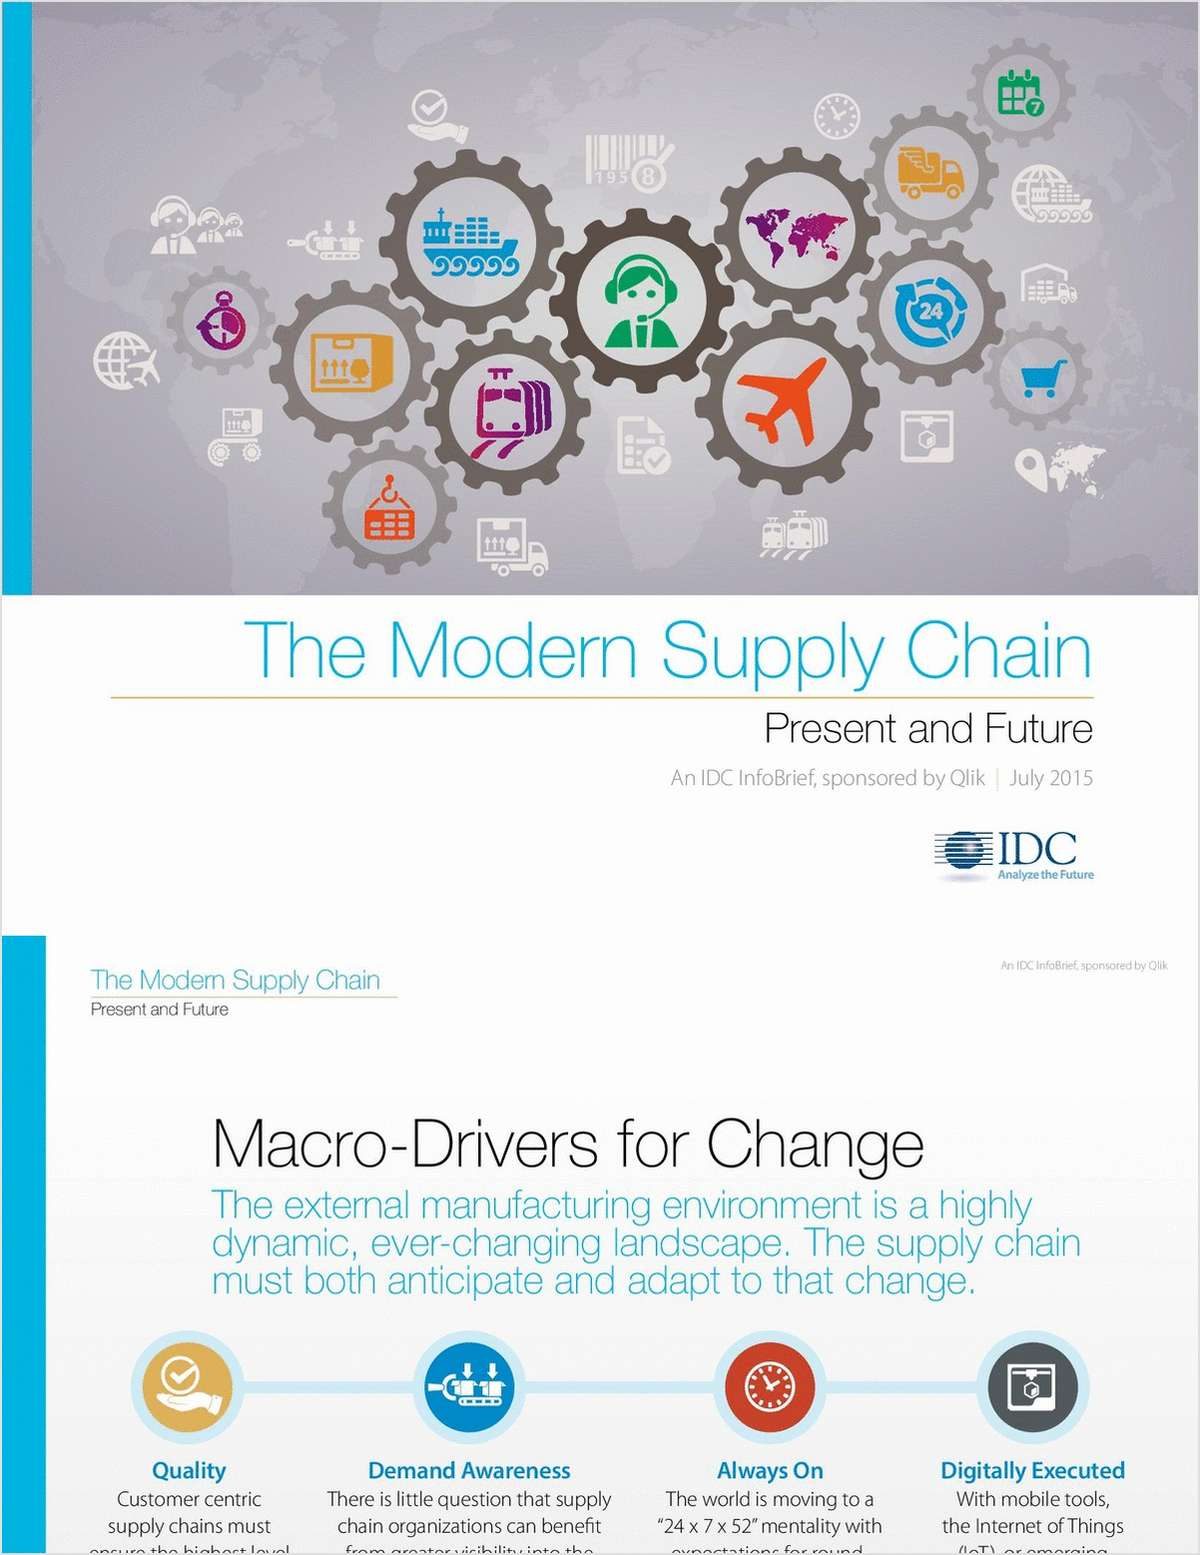 The Modern Supply Chain: Present and Future